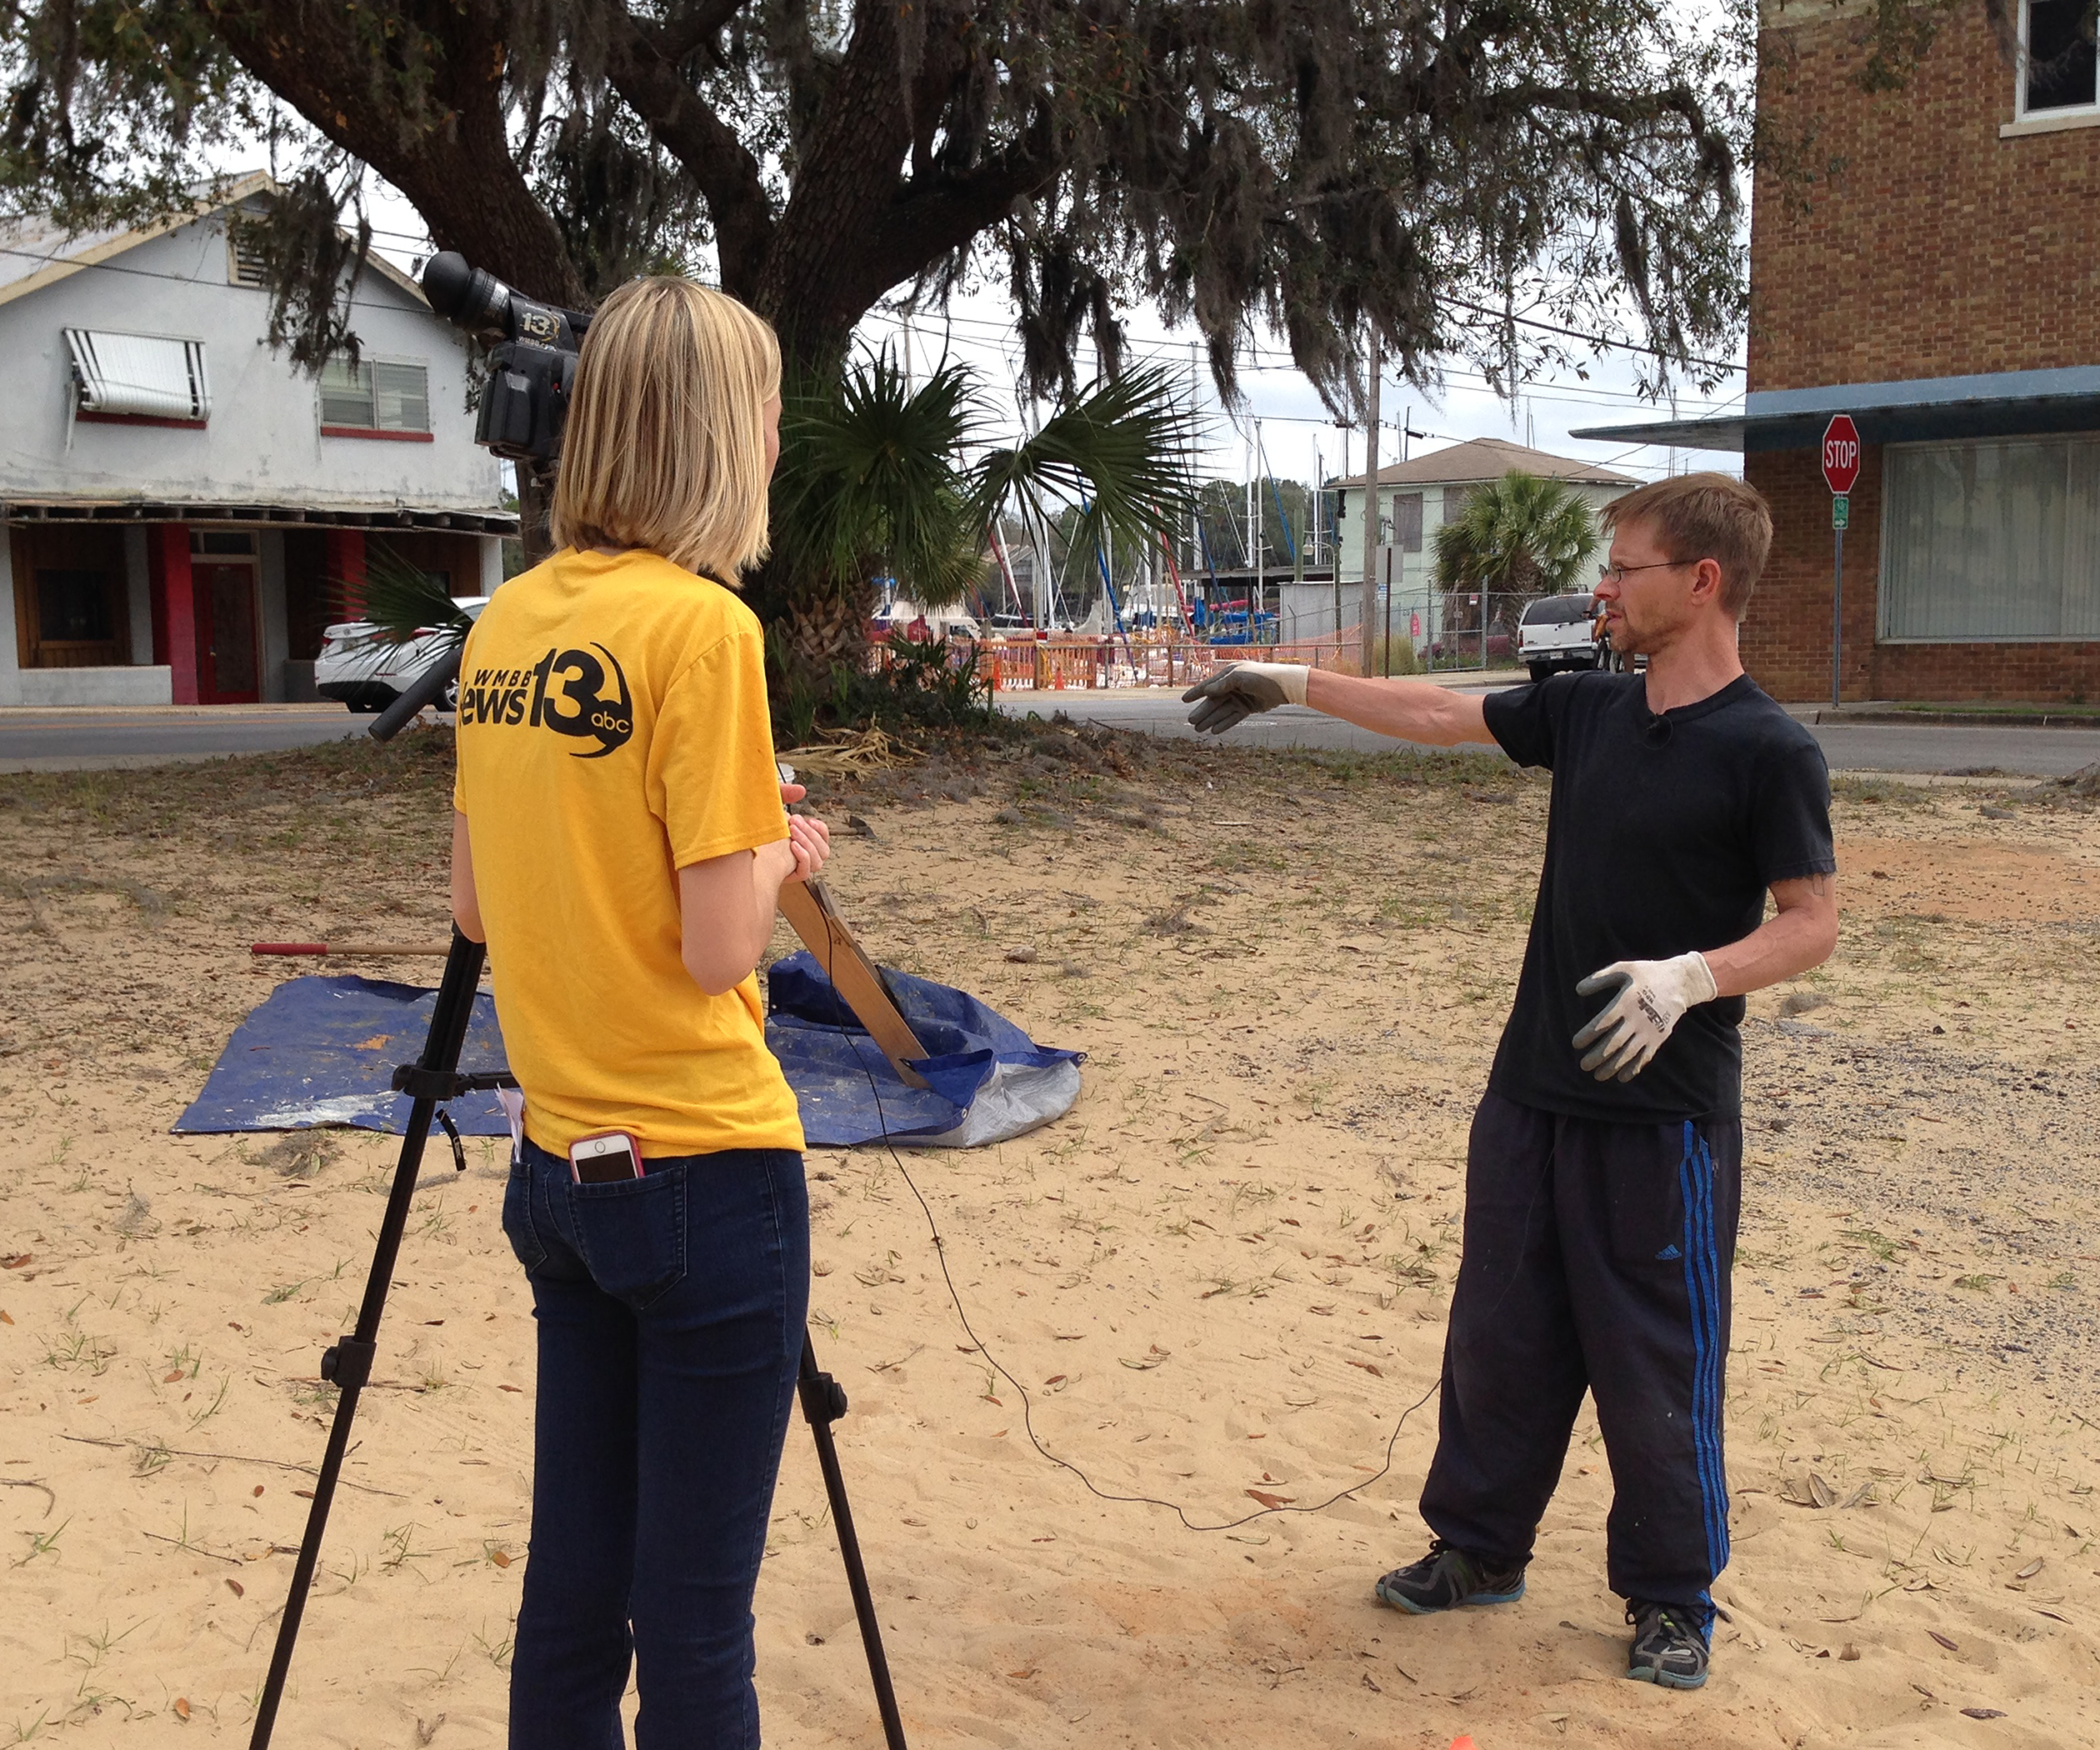 Michael Wright with reporter at archaeological dig